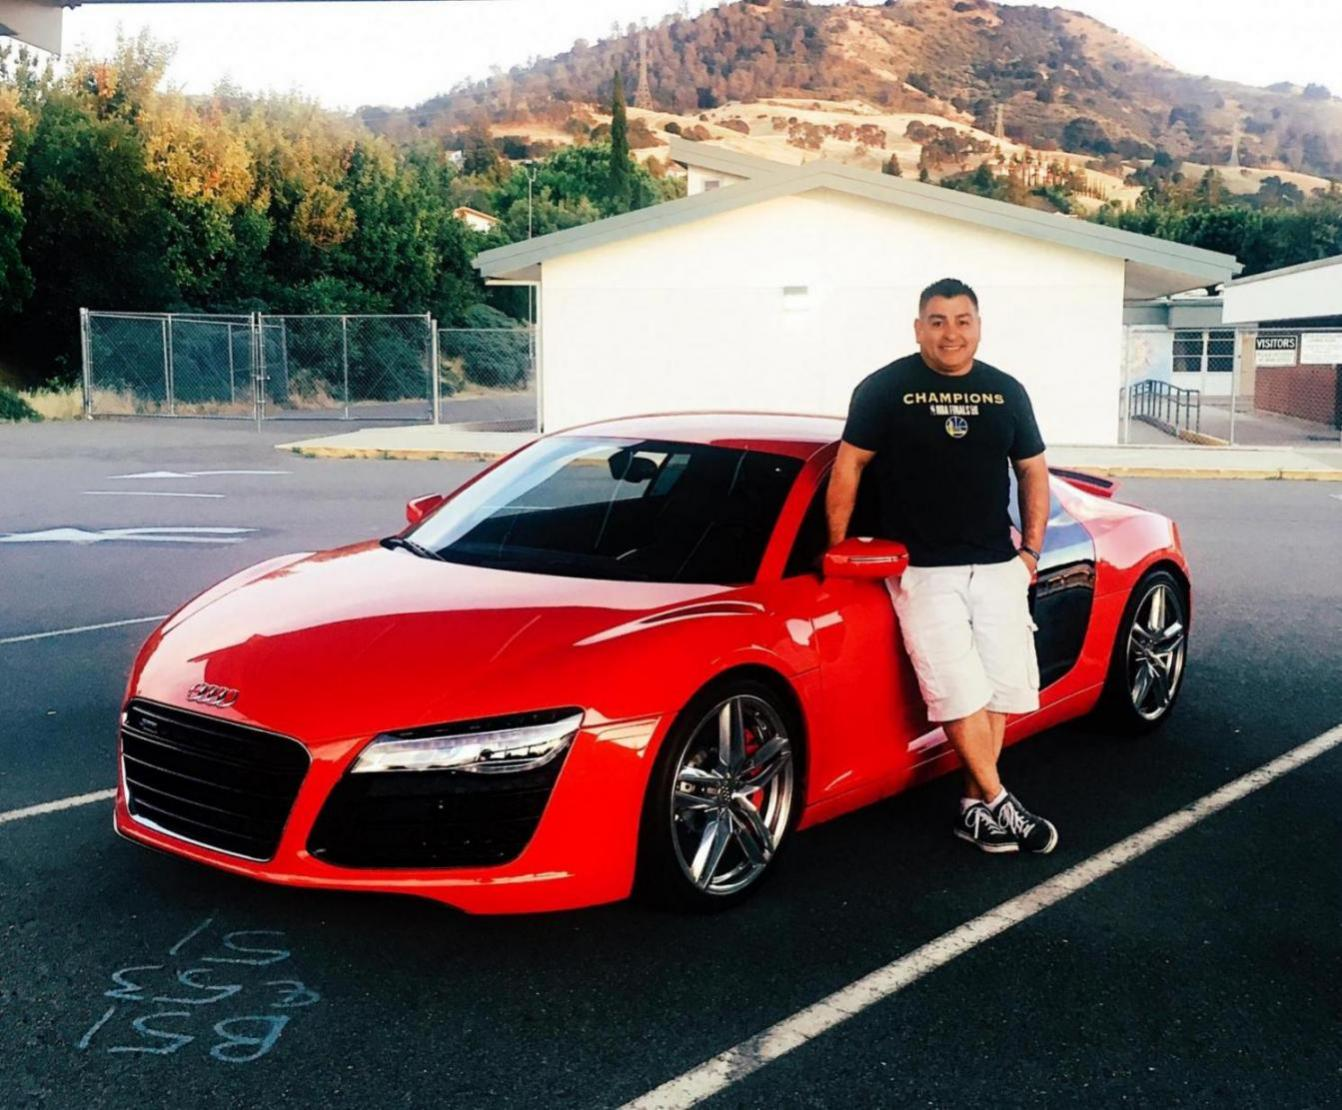 Owners photo with their R8.-44647_1559449317842.jpg